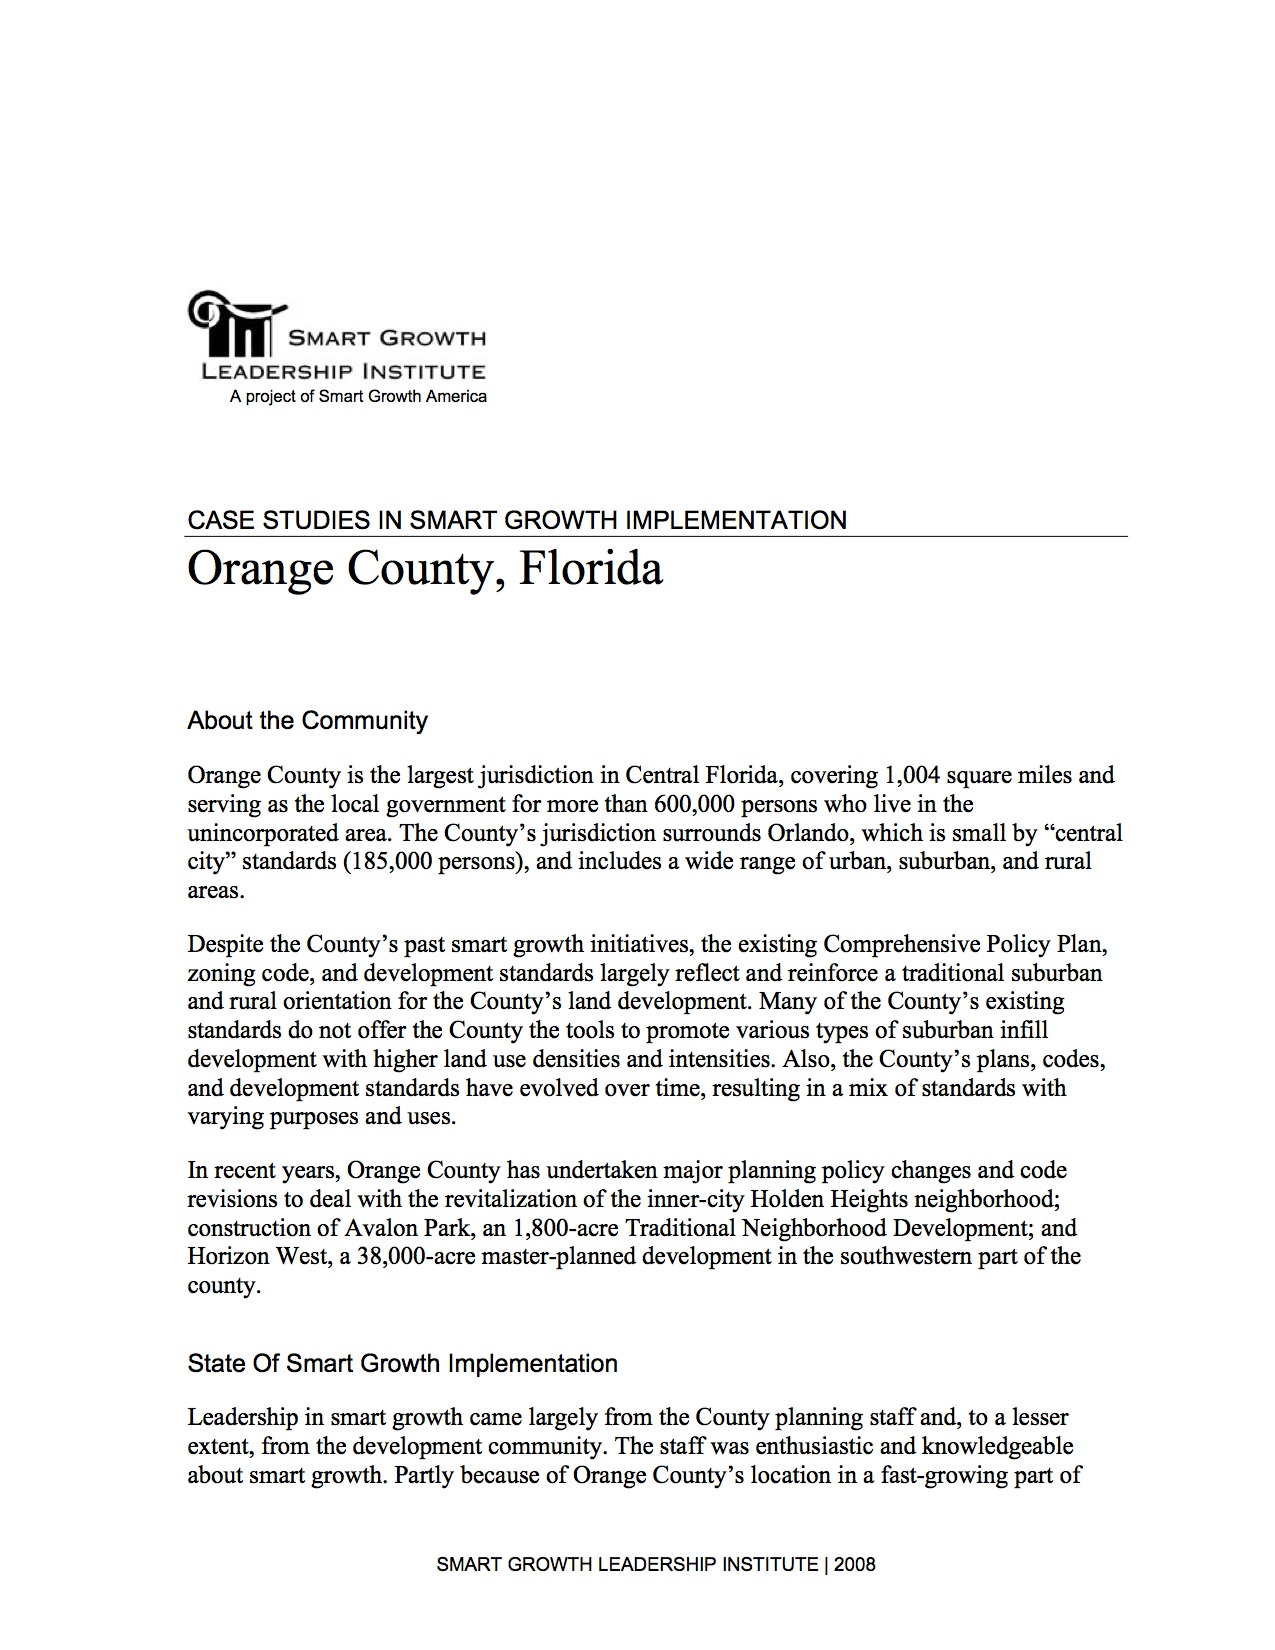 Hotel Guest Service Agent Cover Letter Case Studies In Smart Growth Implementation Orange County